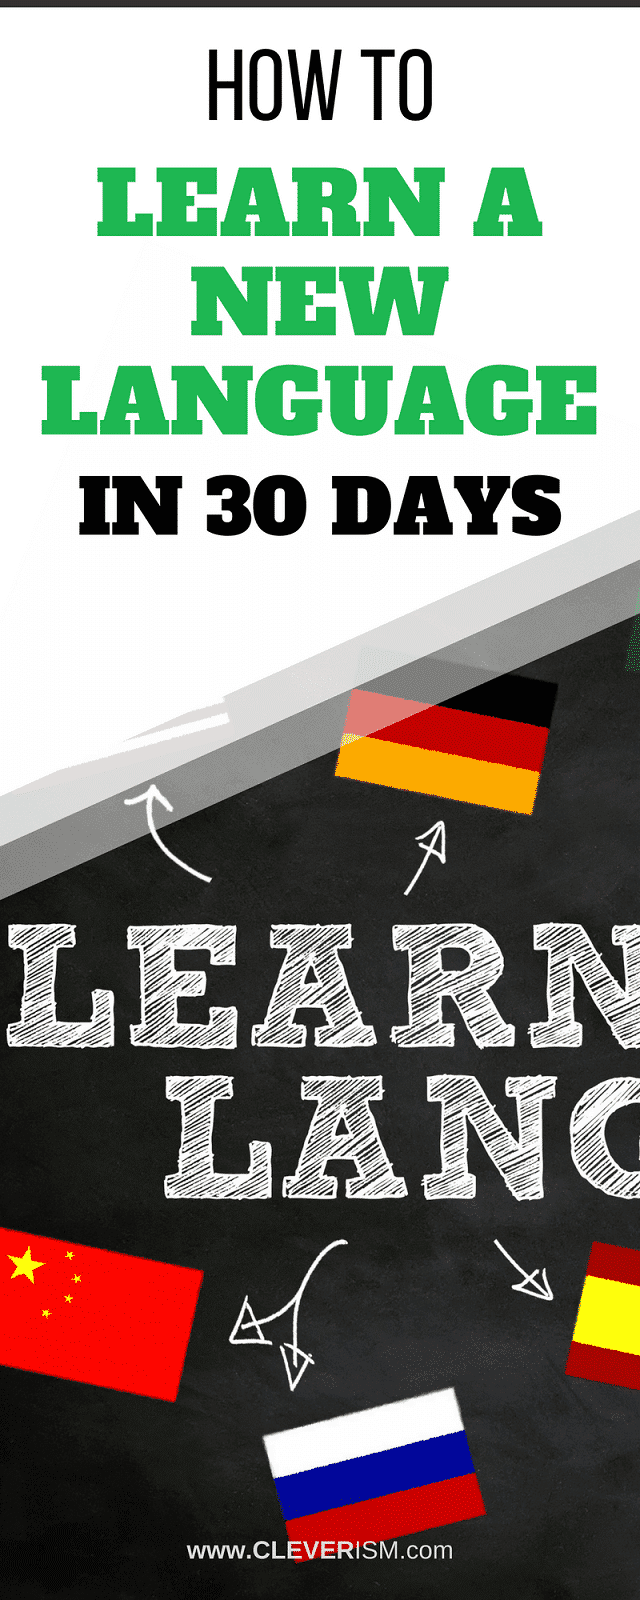 How To Learn A New Language In 30 Days